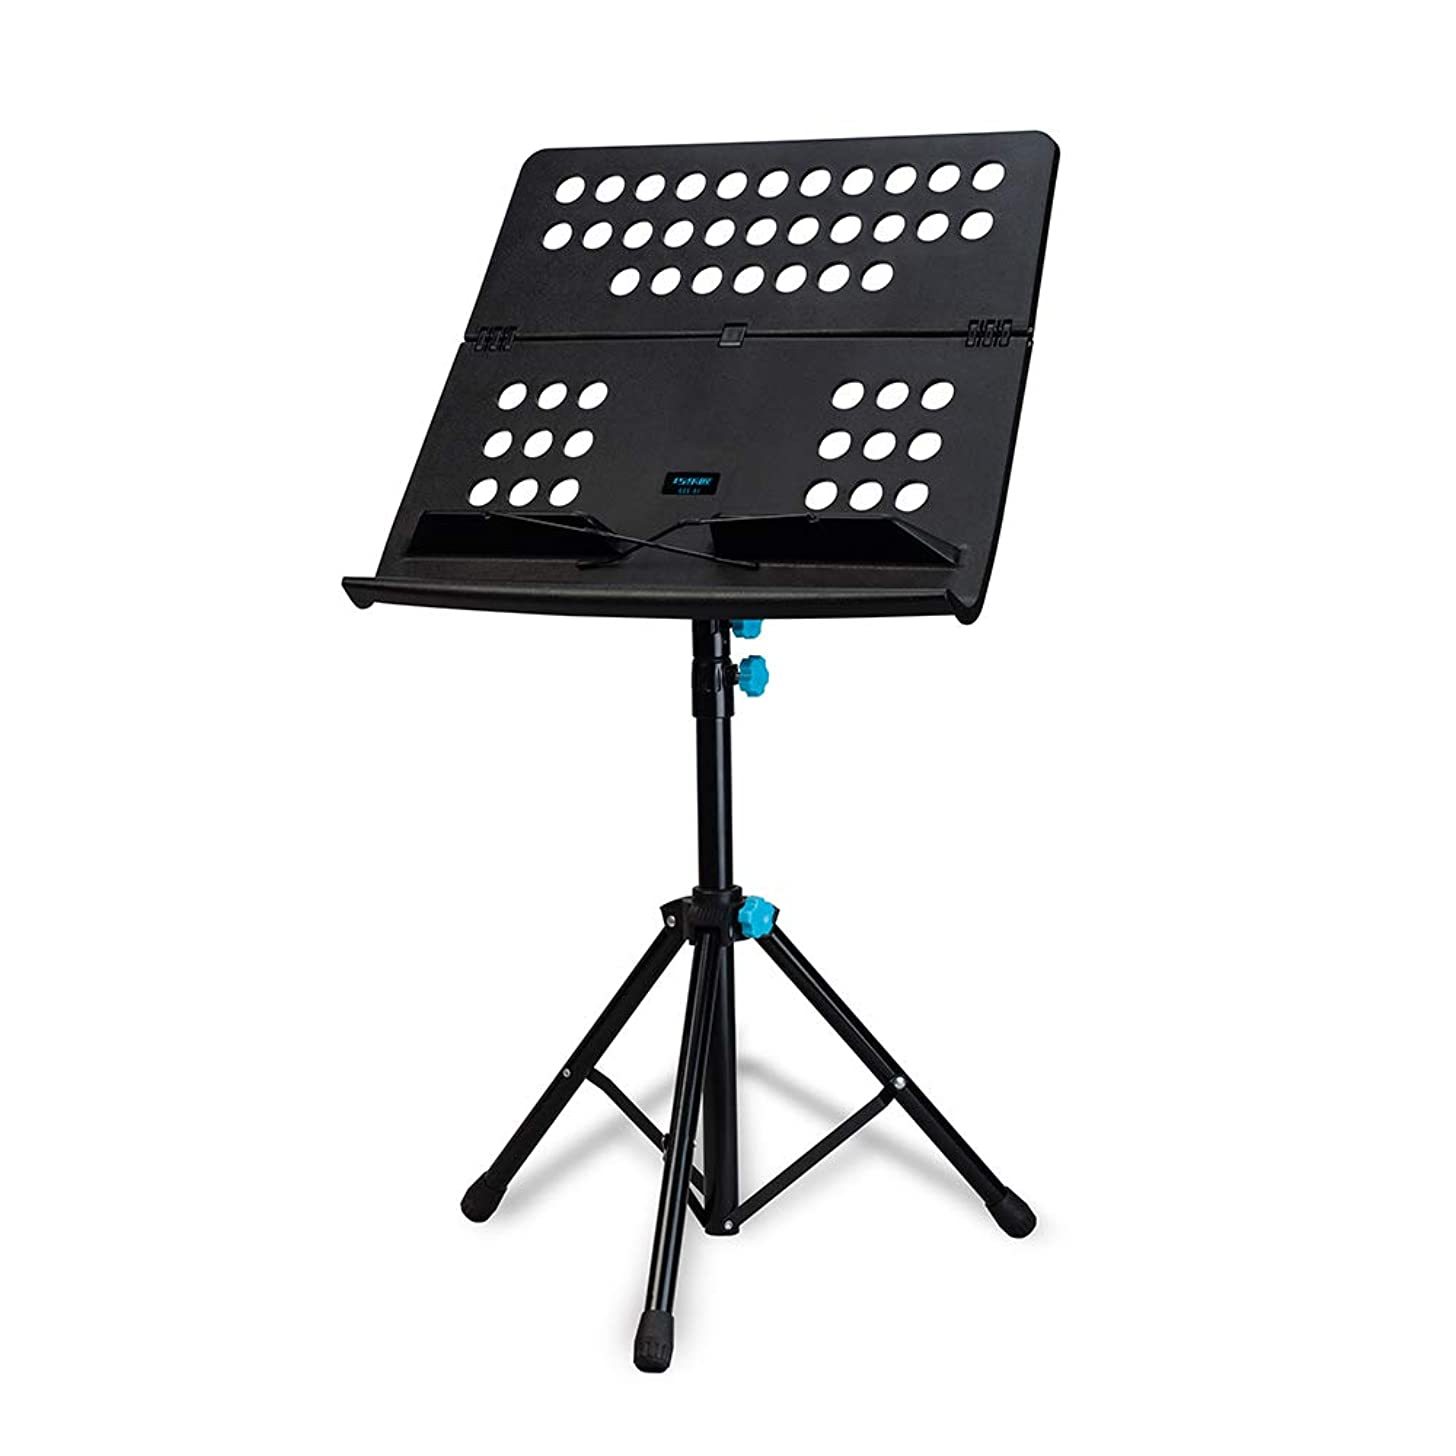 Folding Portable Sheet Music Stand Shelf Kit 3-Level Adjustable Height with Carry Bag Black